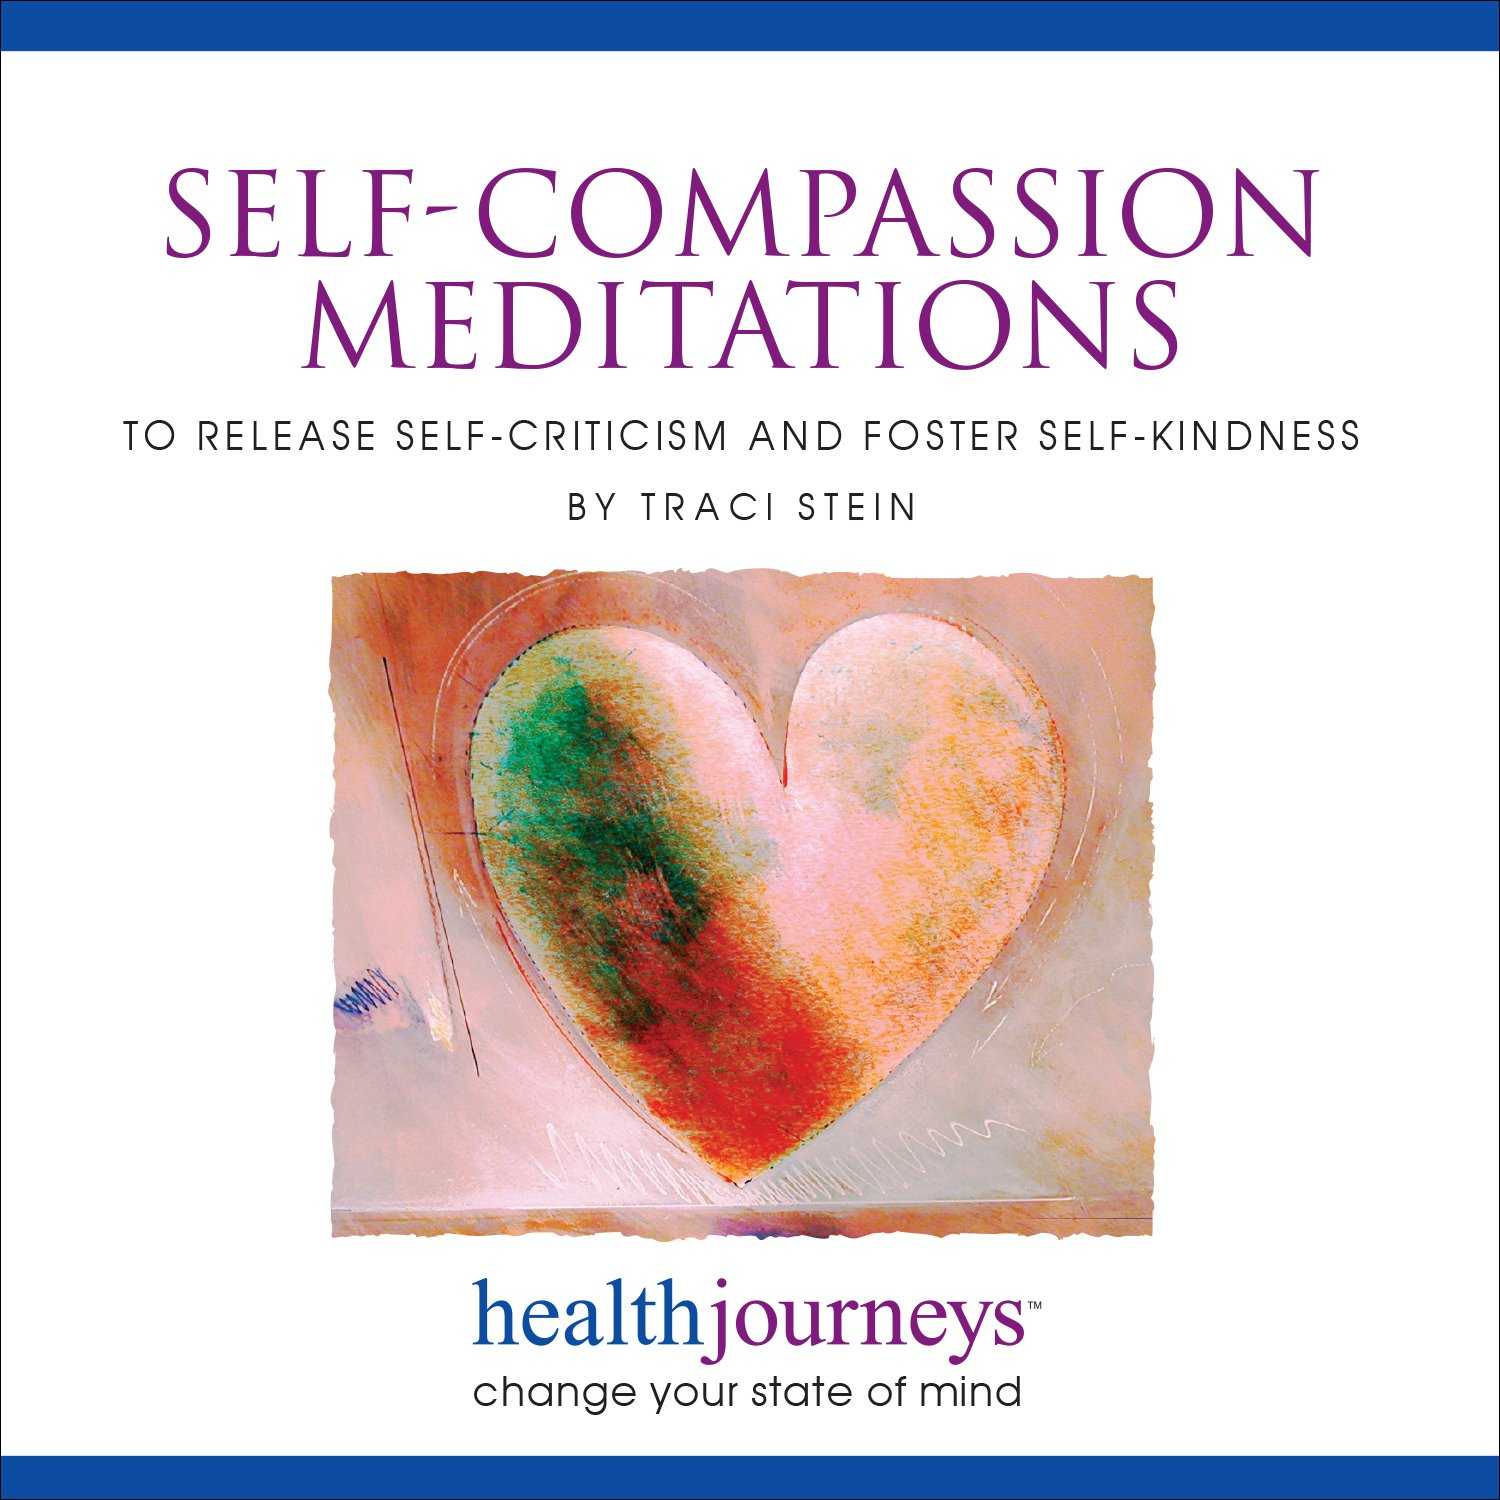 Meditations to Help with Self-Compassion, Release Self-Criticism, Foster Self-Kindness, Nurture Self-Love, 4-Part Collection of Meditation Audio with Soothing Music by Traci Stein and Steven Mark Kohn